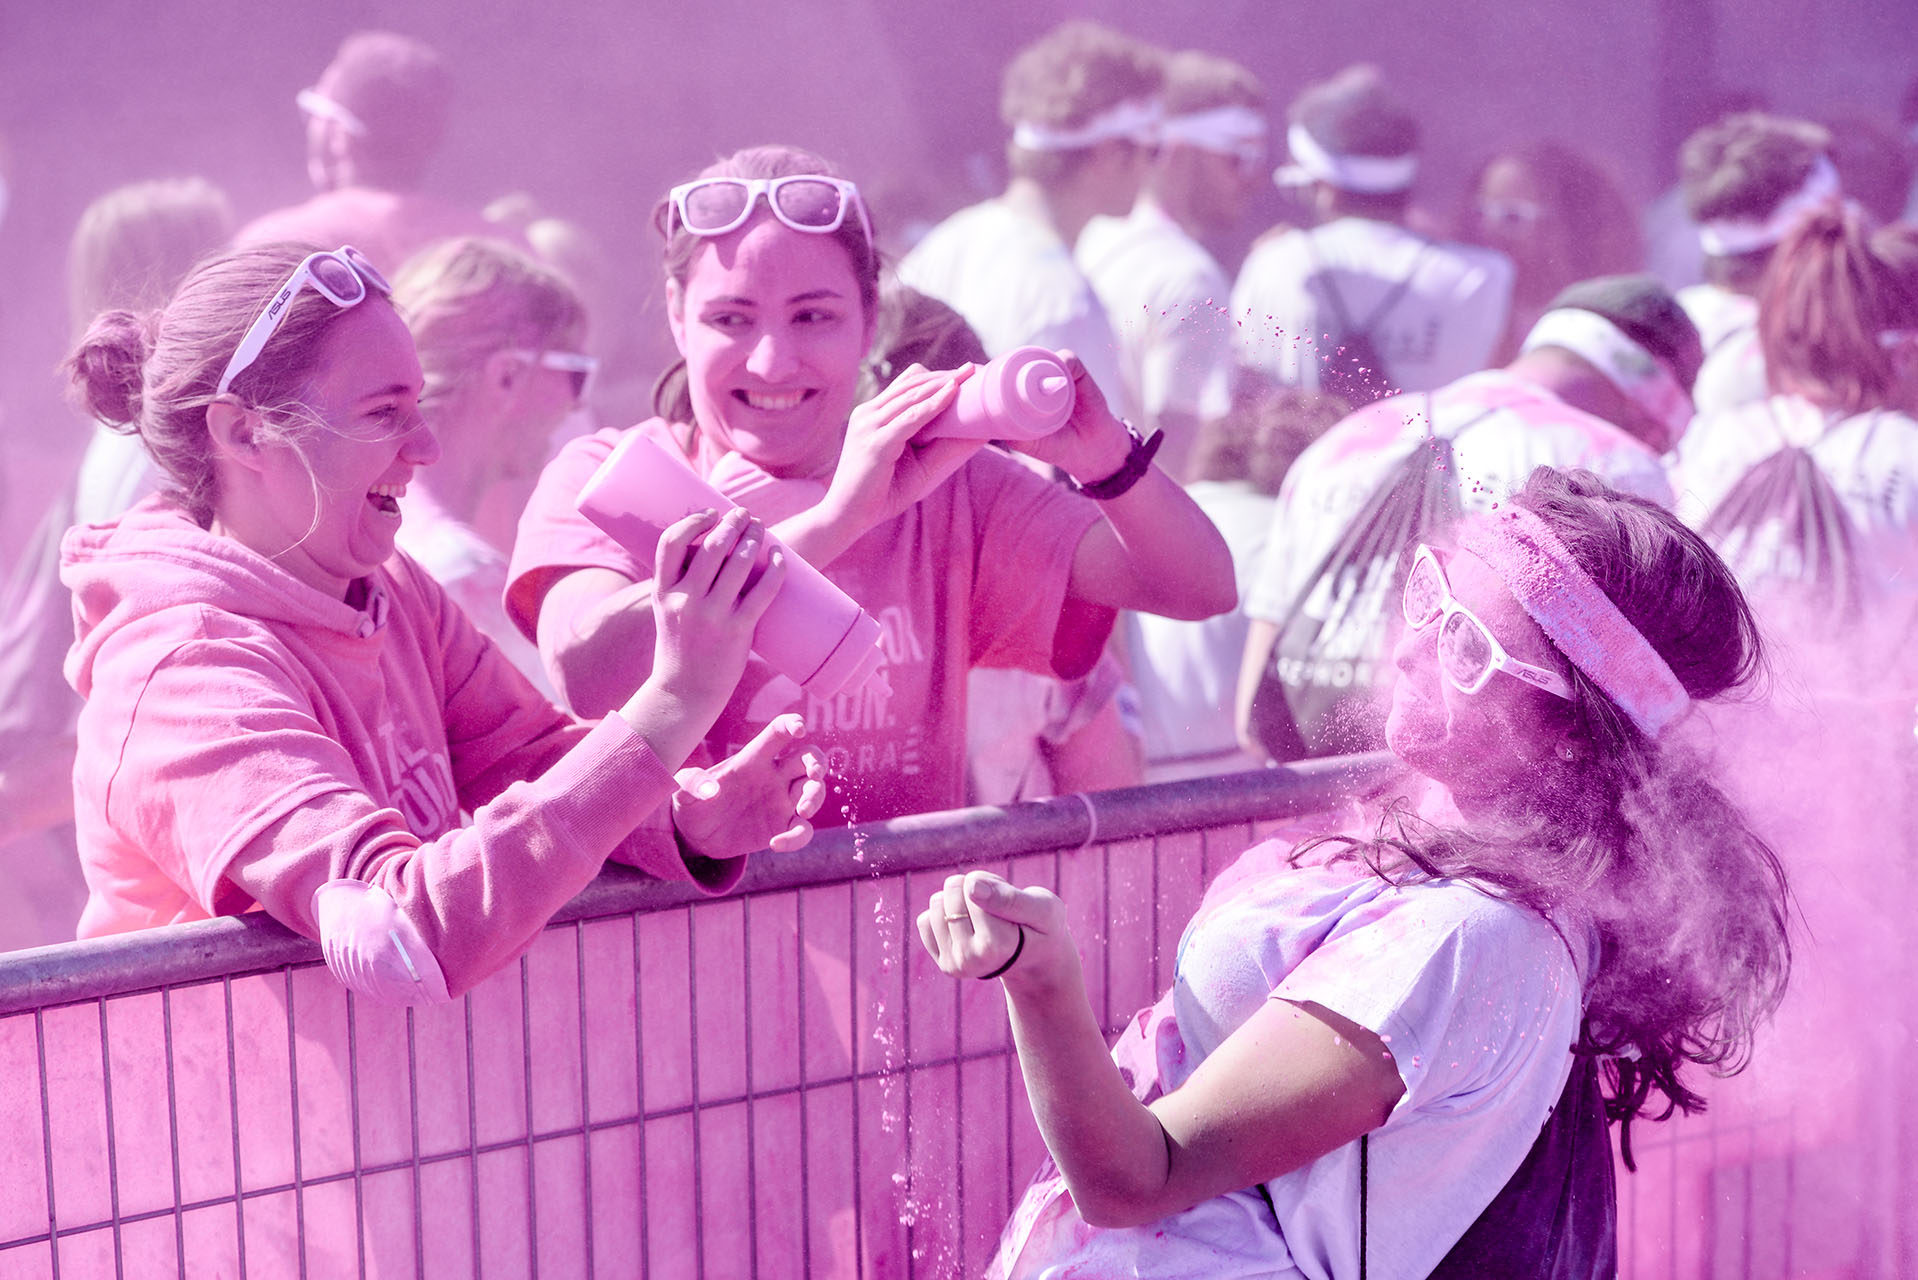 maya-angelsen-photographe-evenementiel-ile-de-france-color-run-mairie-de-paris